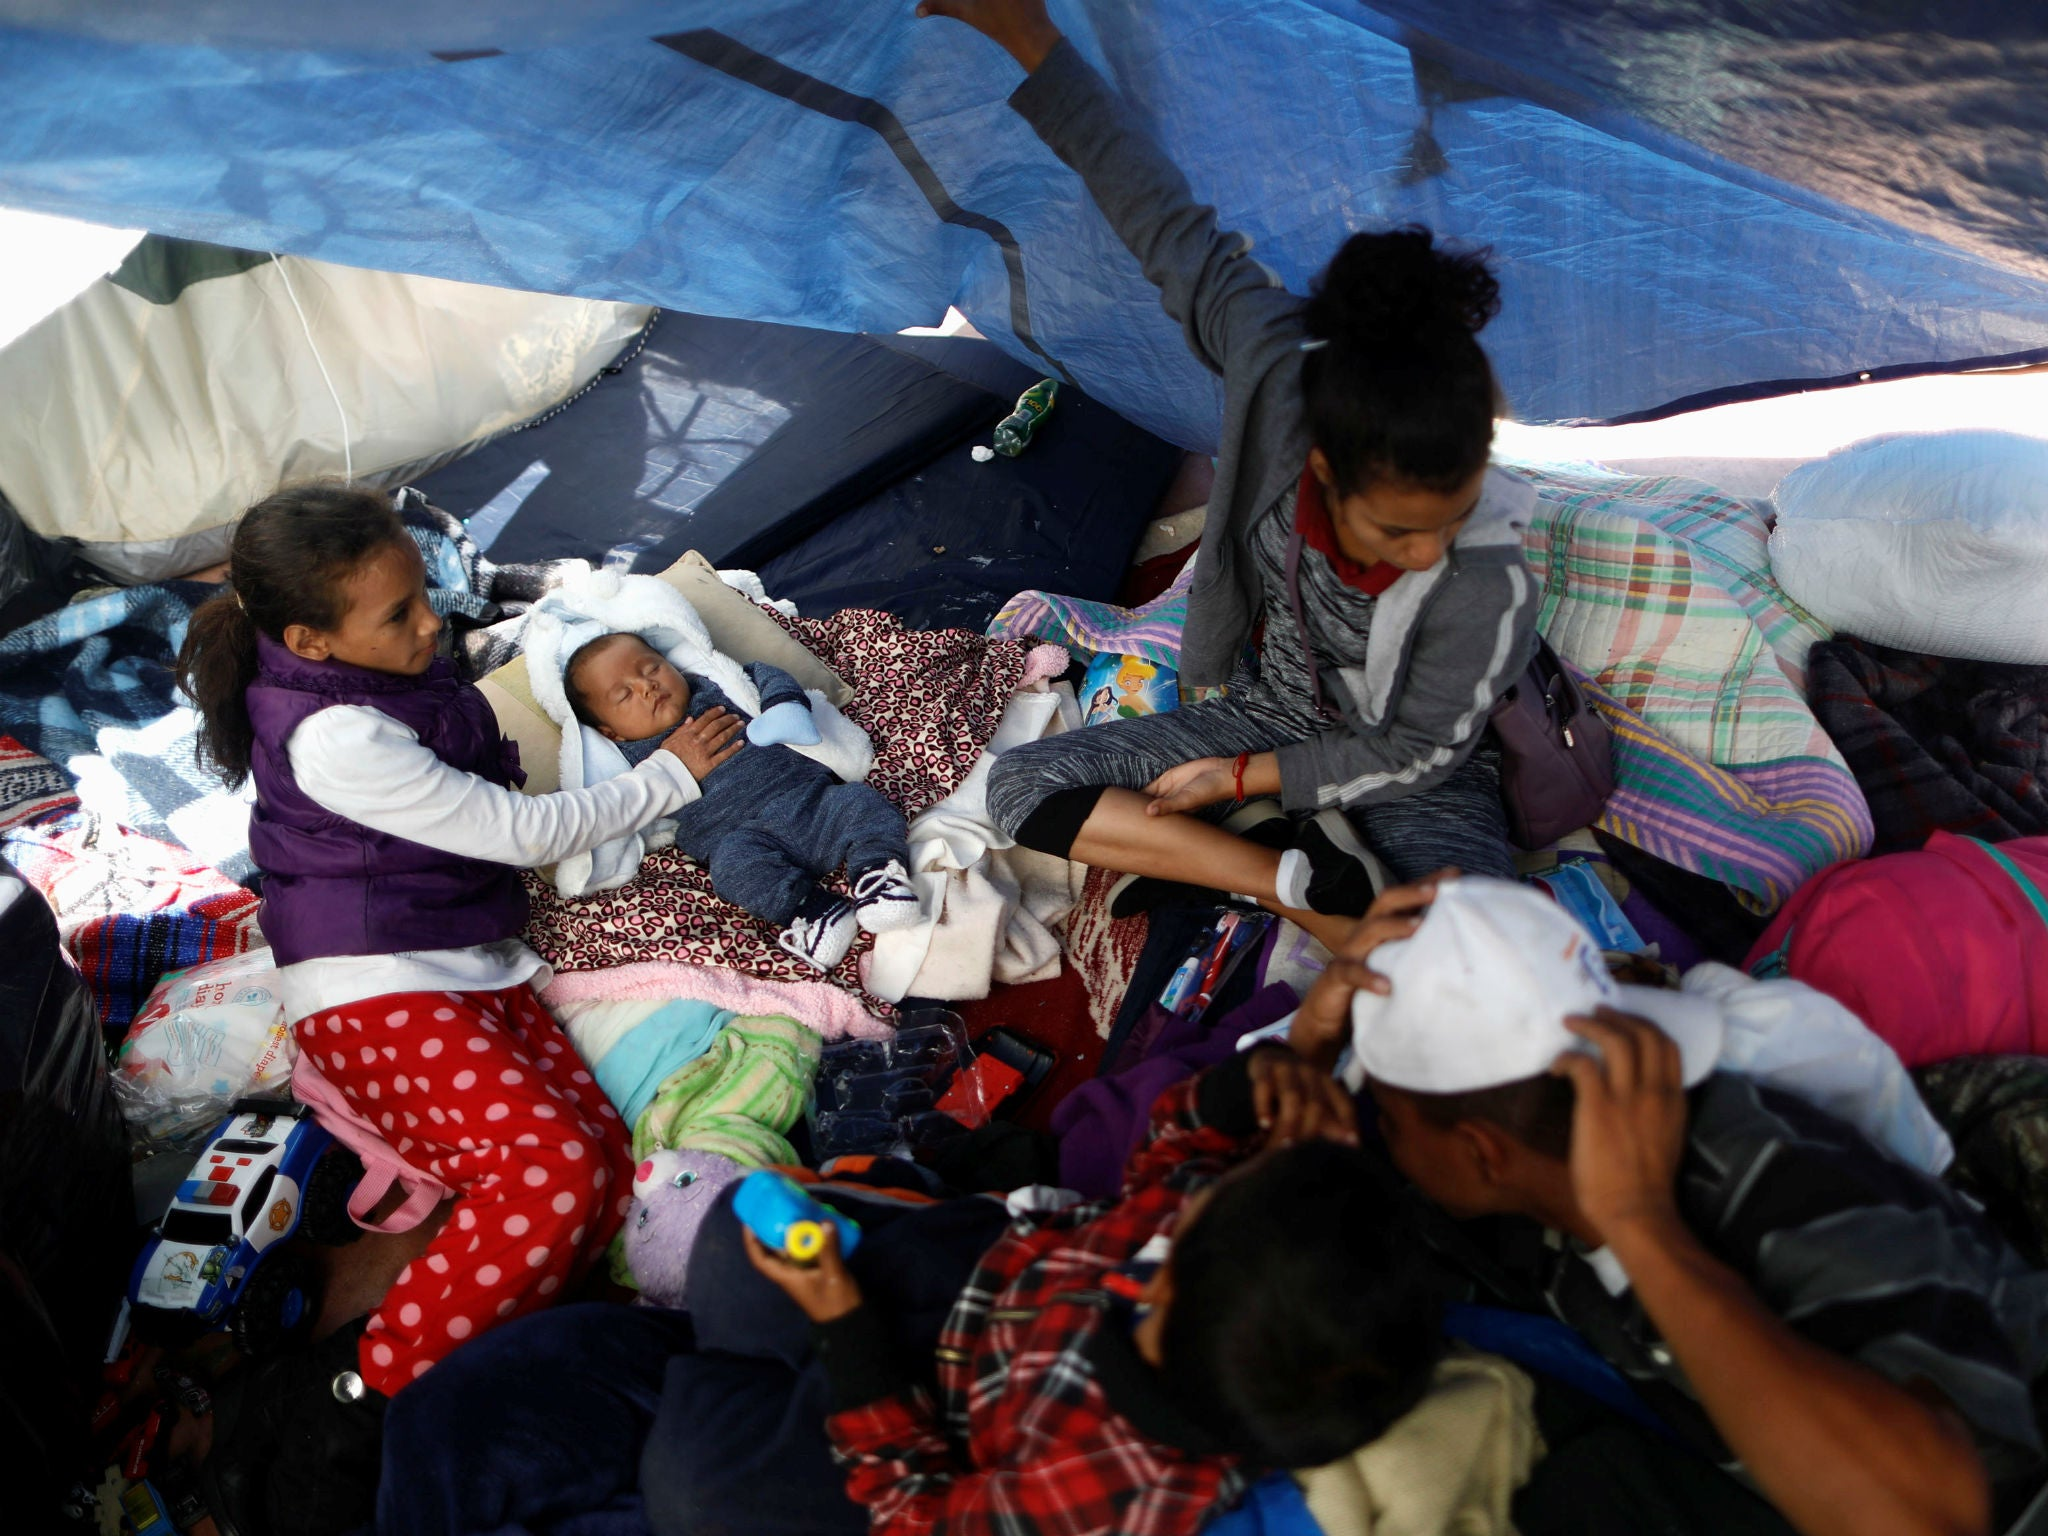 Trump administration to place unaccompanied migrant children in tents at remote Texas site